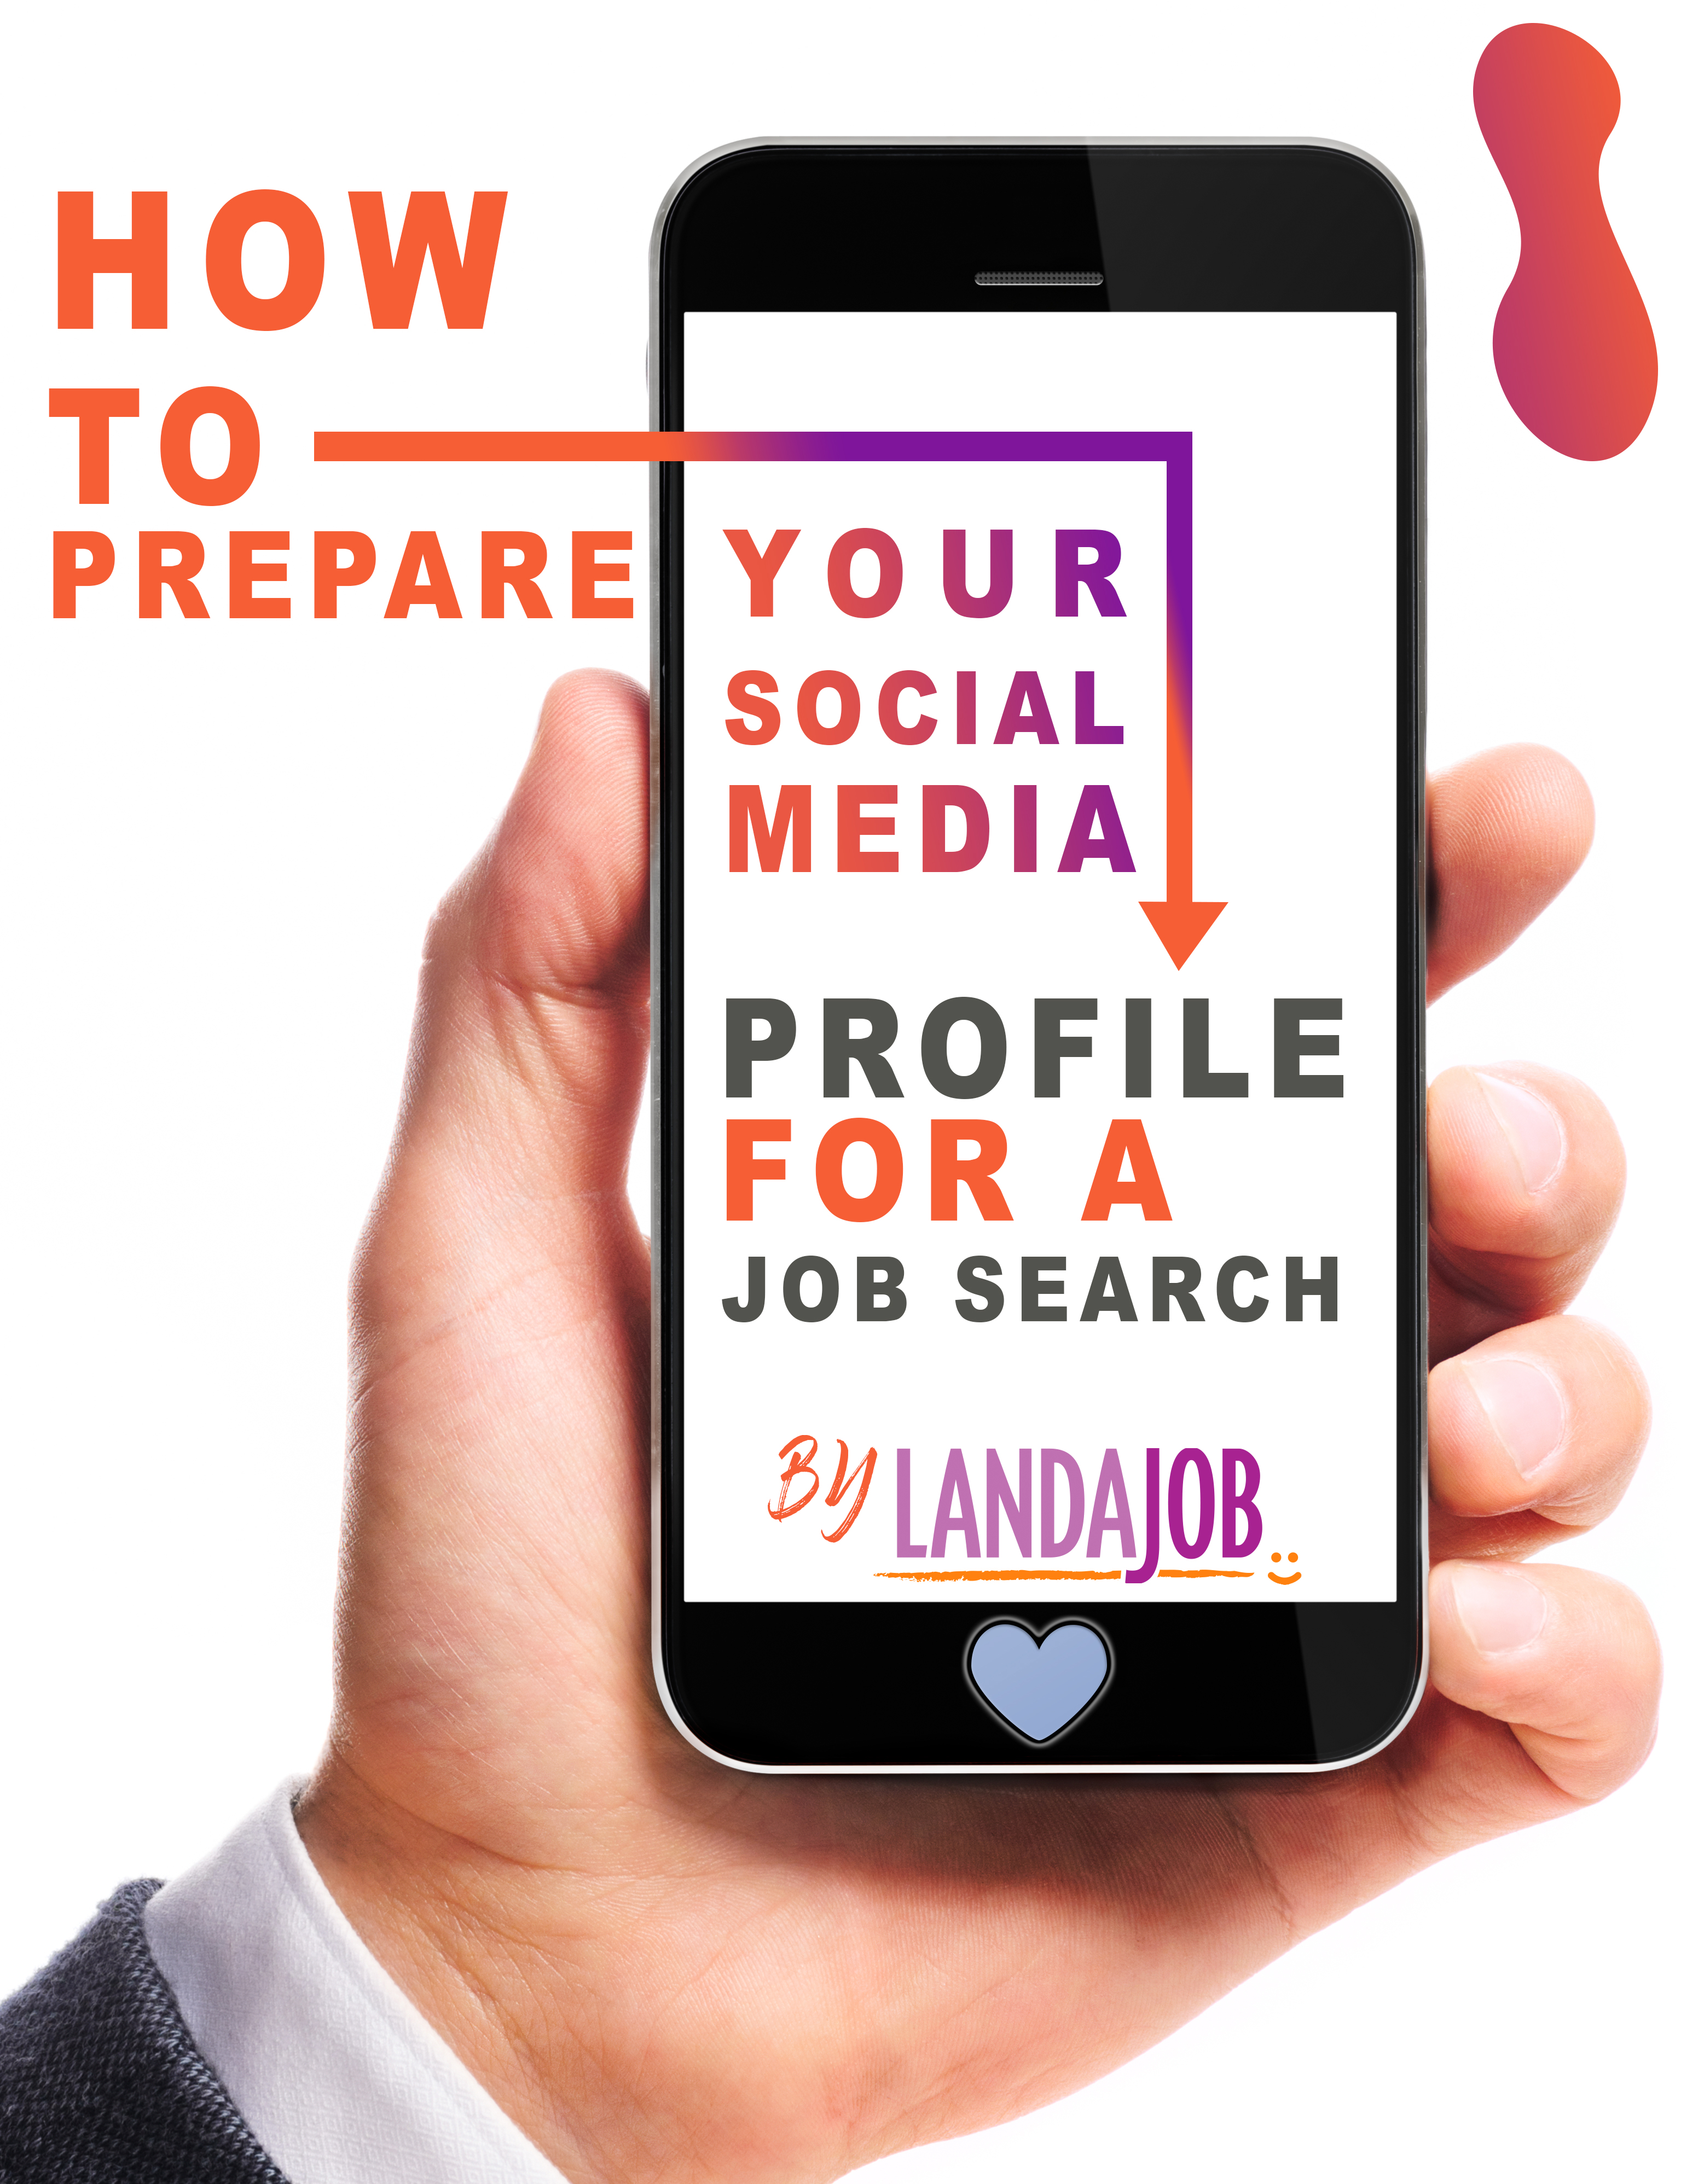 How To Prepare Your Social Media Profile For A Job Search